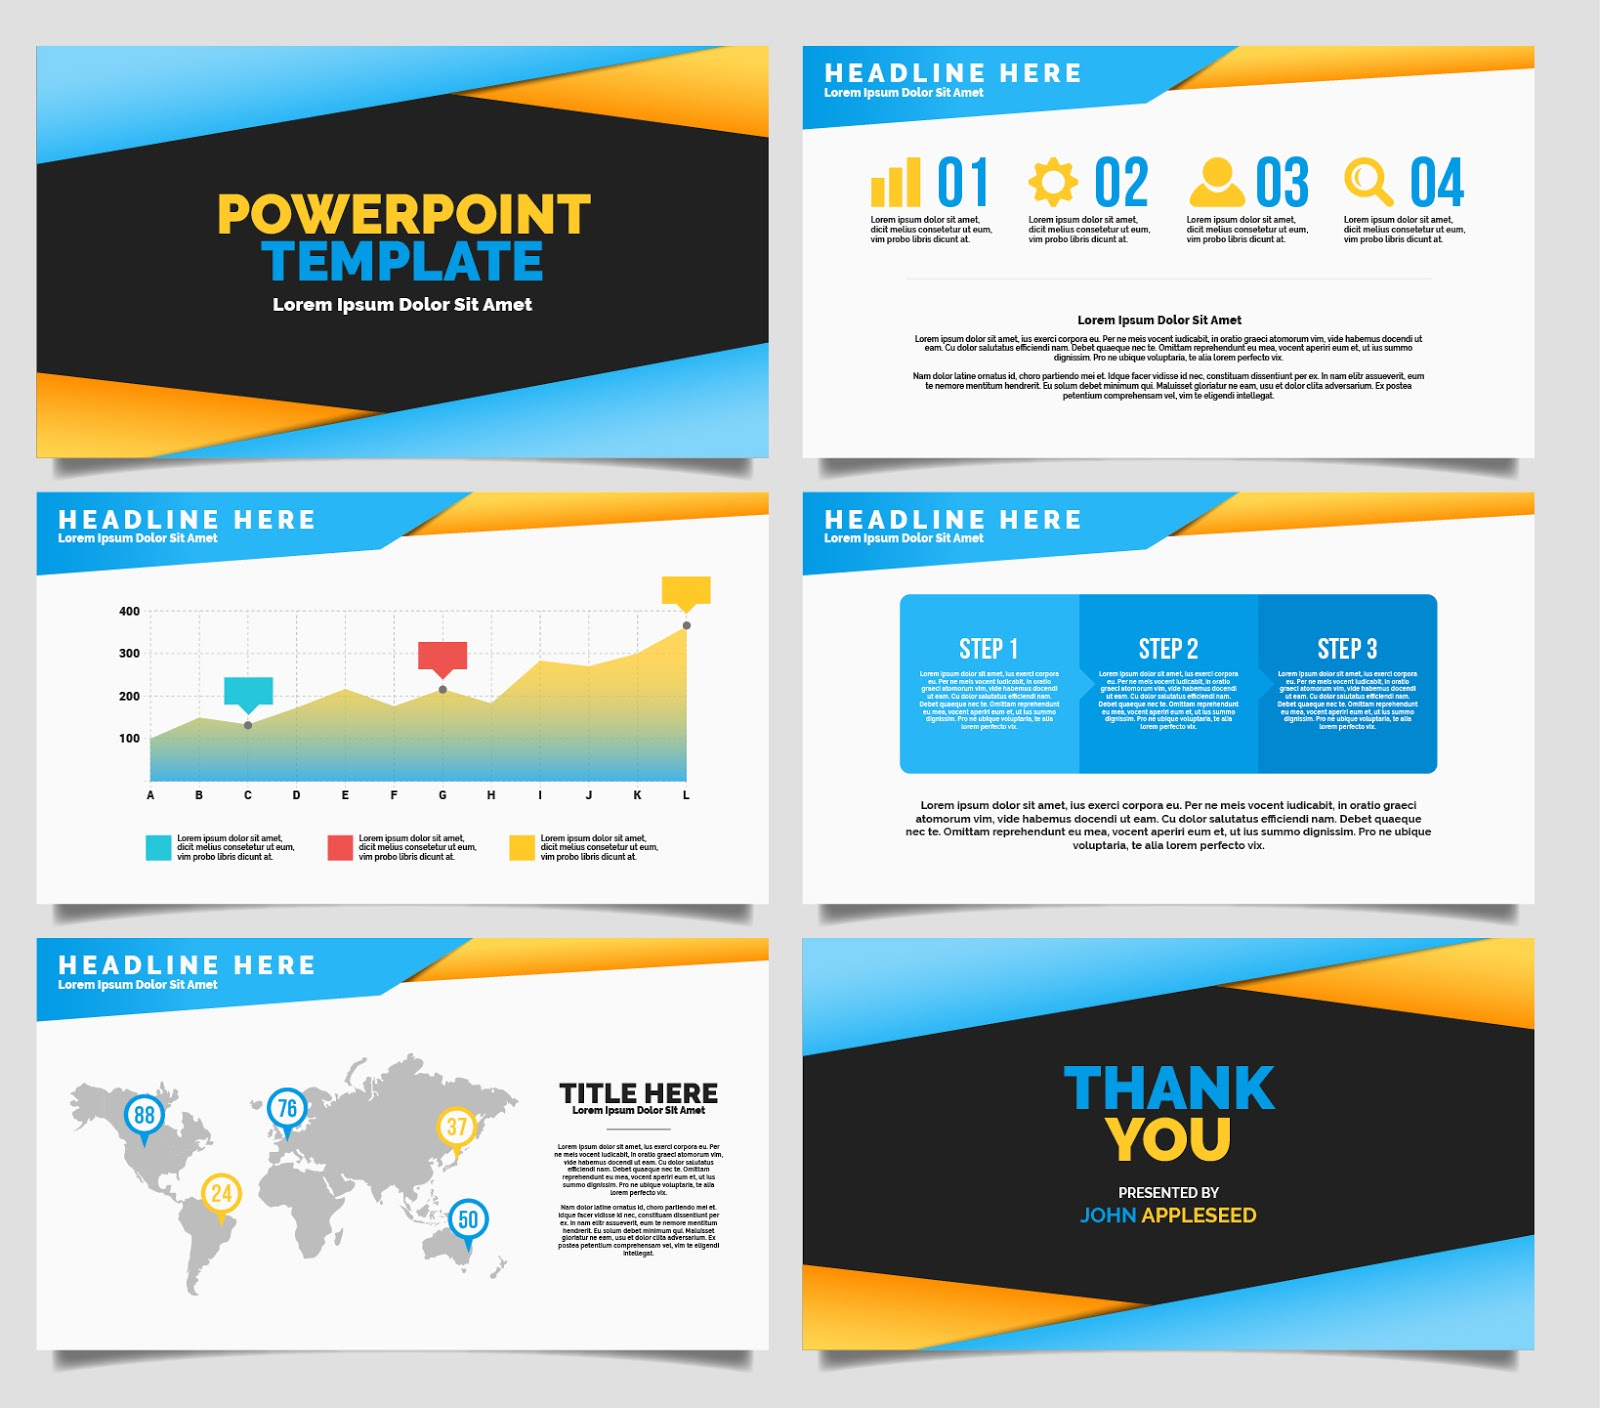 template powerpoint keren gallery - templates example free download, Powerpoint templates